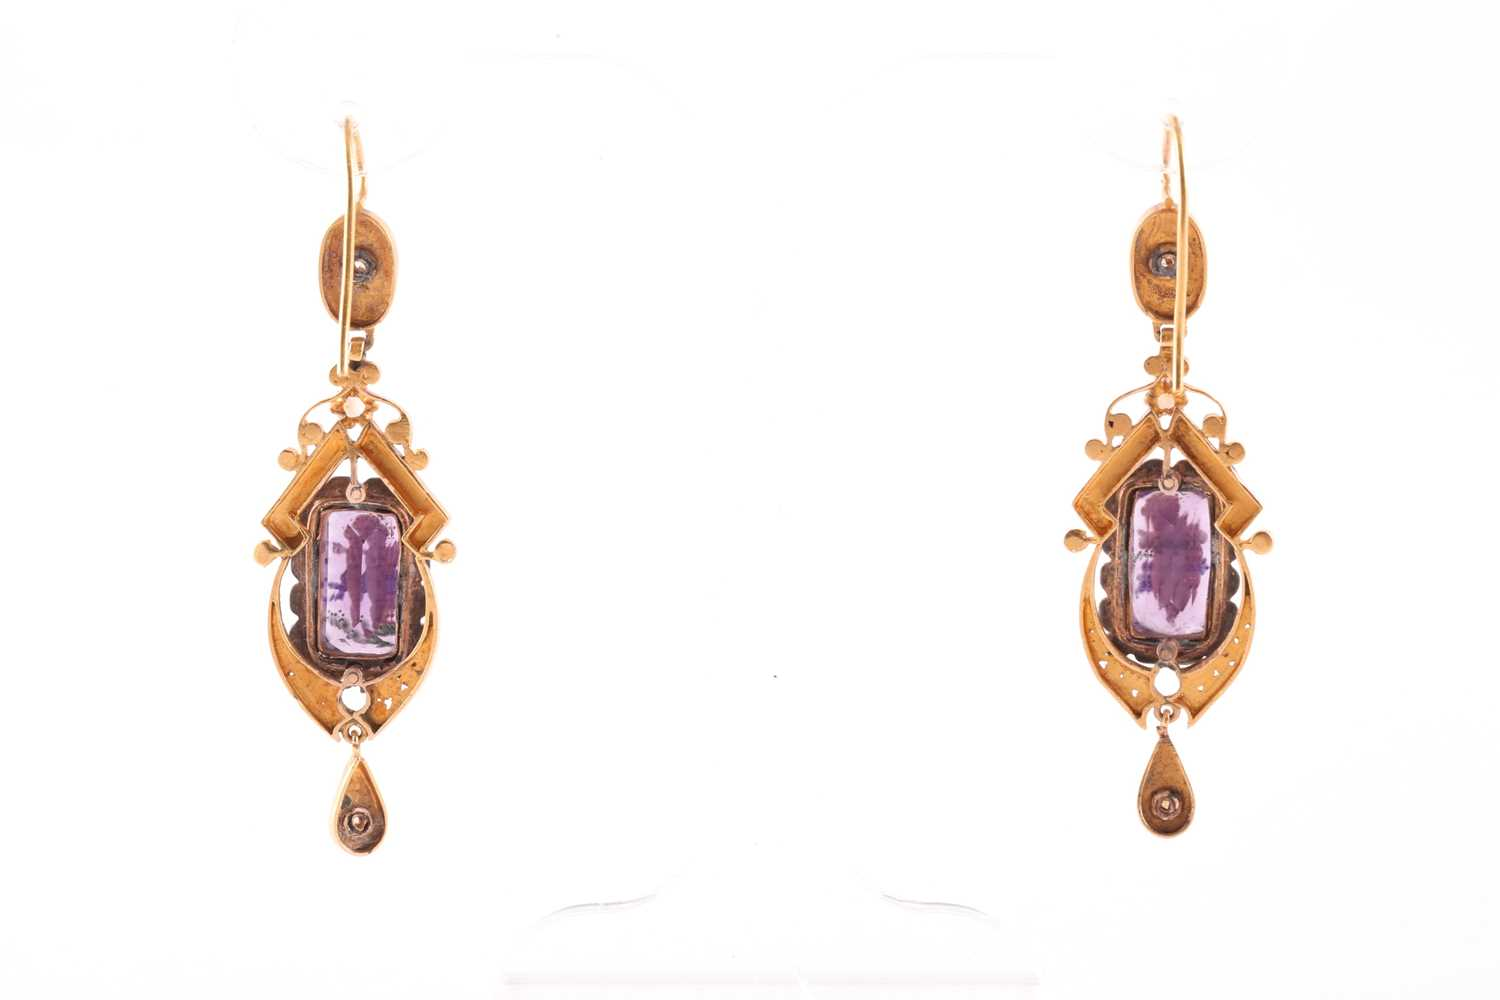 A late 19th century yellow gold French pendant, centred with amethyst glass, polychrome painted with - Image 5 of 5